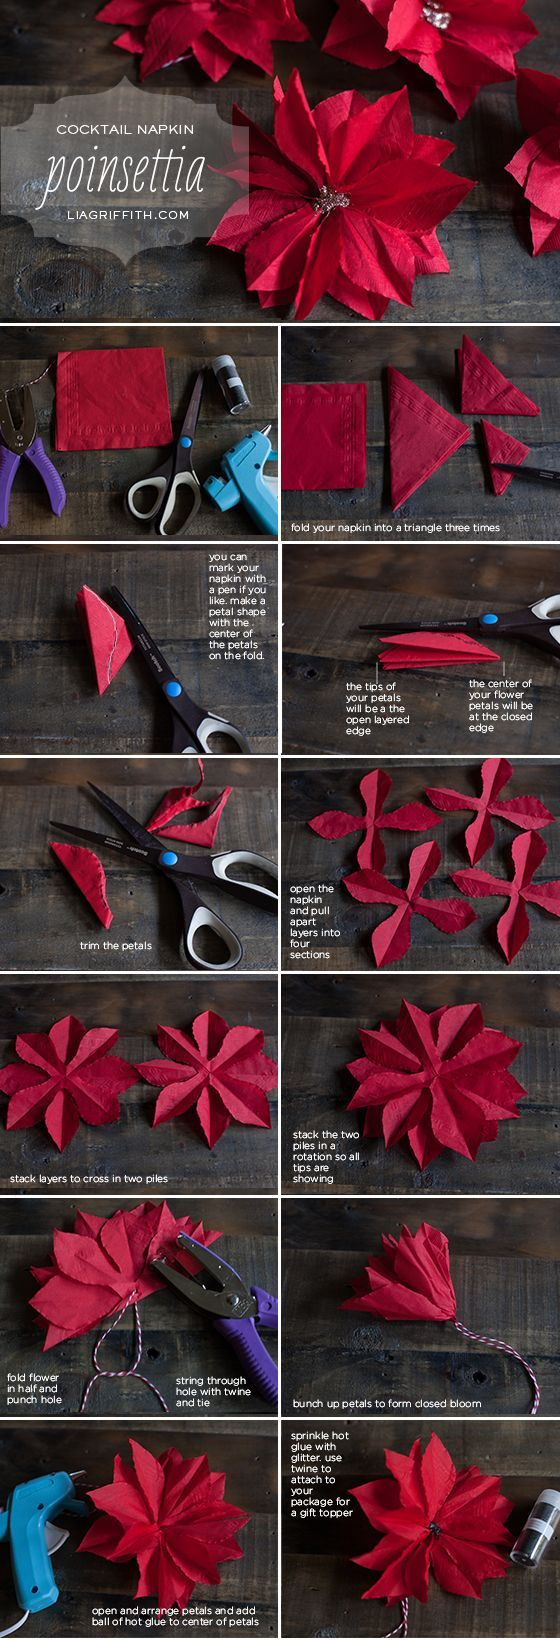 DIY Poinsettas christmas diy ideas craft flowers paper crafts origami christmas crafts christmas decorations christmas decor christmas crafts for kids chistmas diy poinsetta